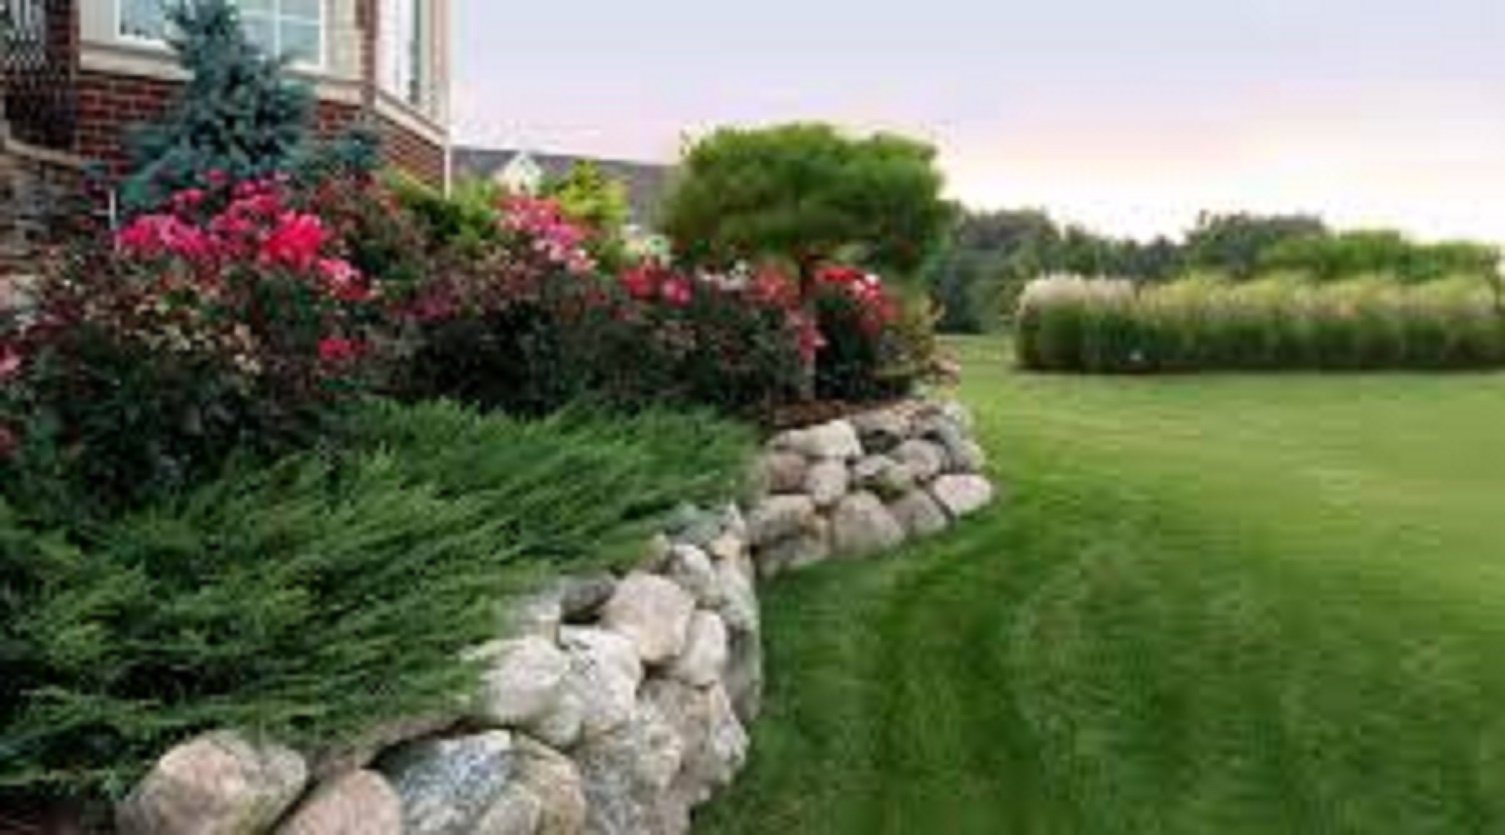 Established Landscaping Business-Serving Augusta Area For 20 Yrs for sale in Columbia County Georgia Landscape Fix